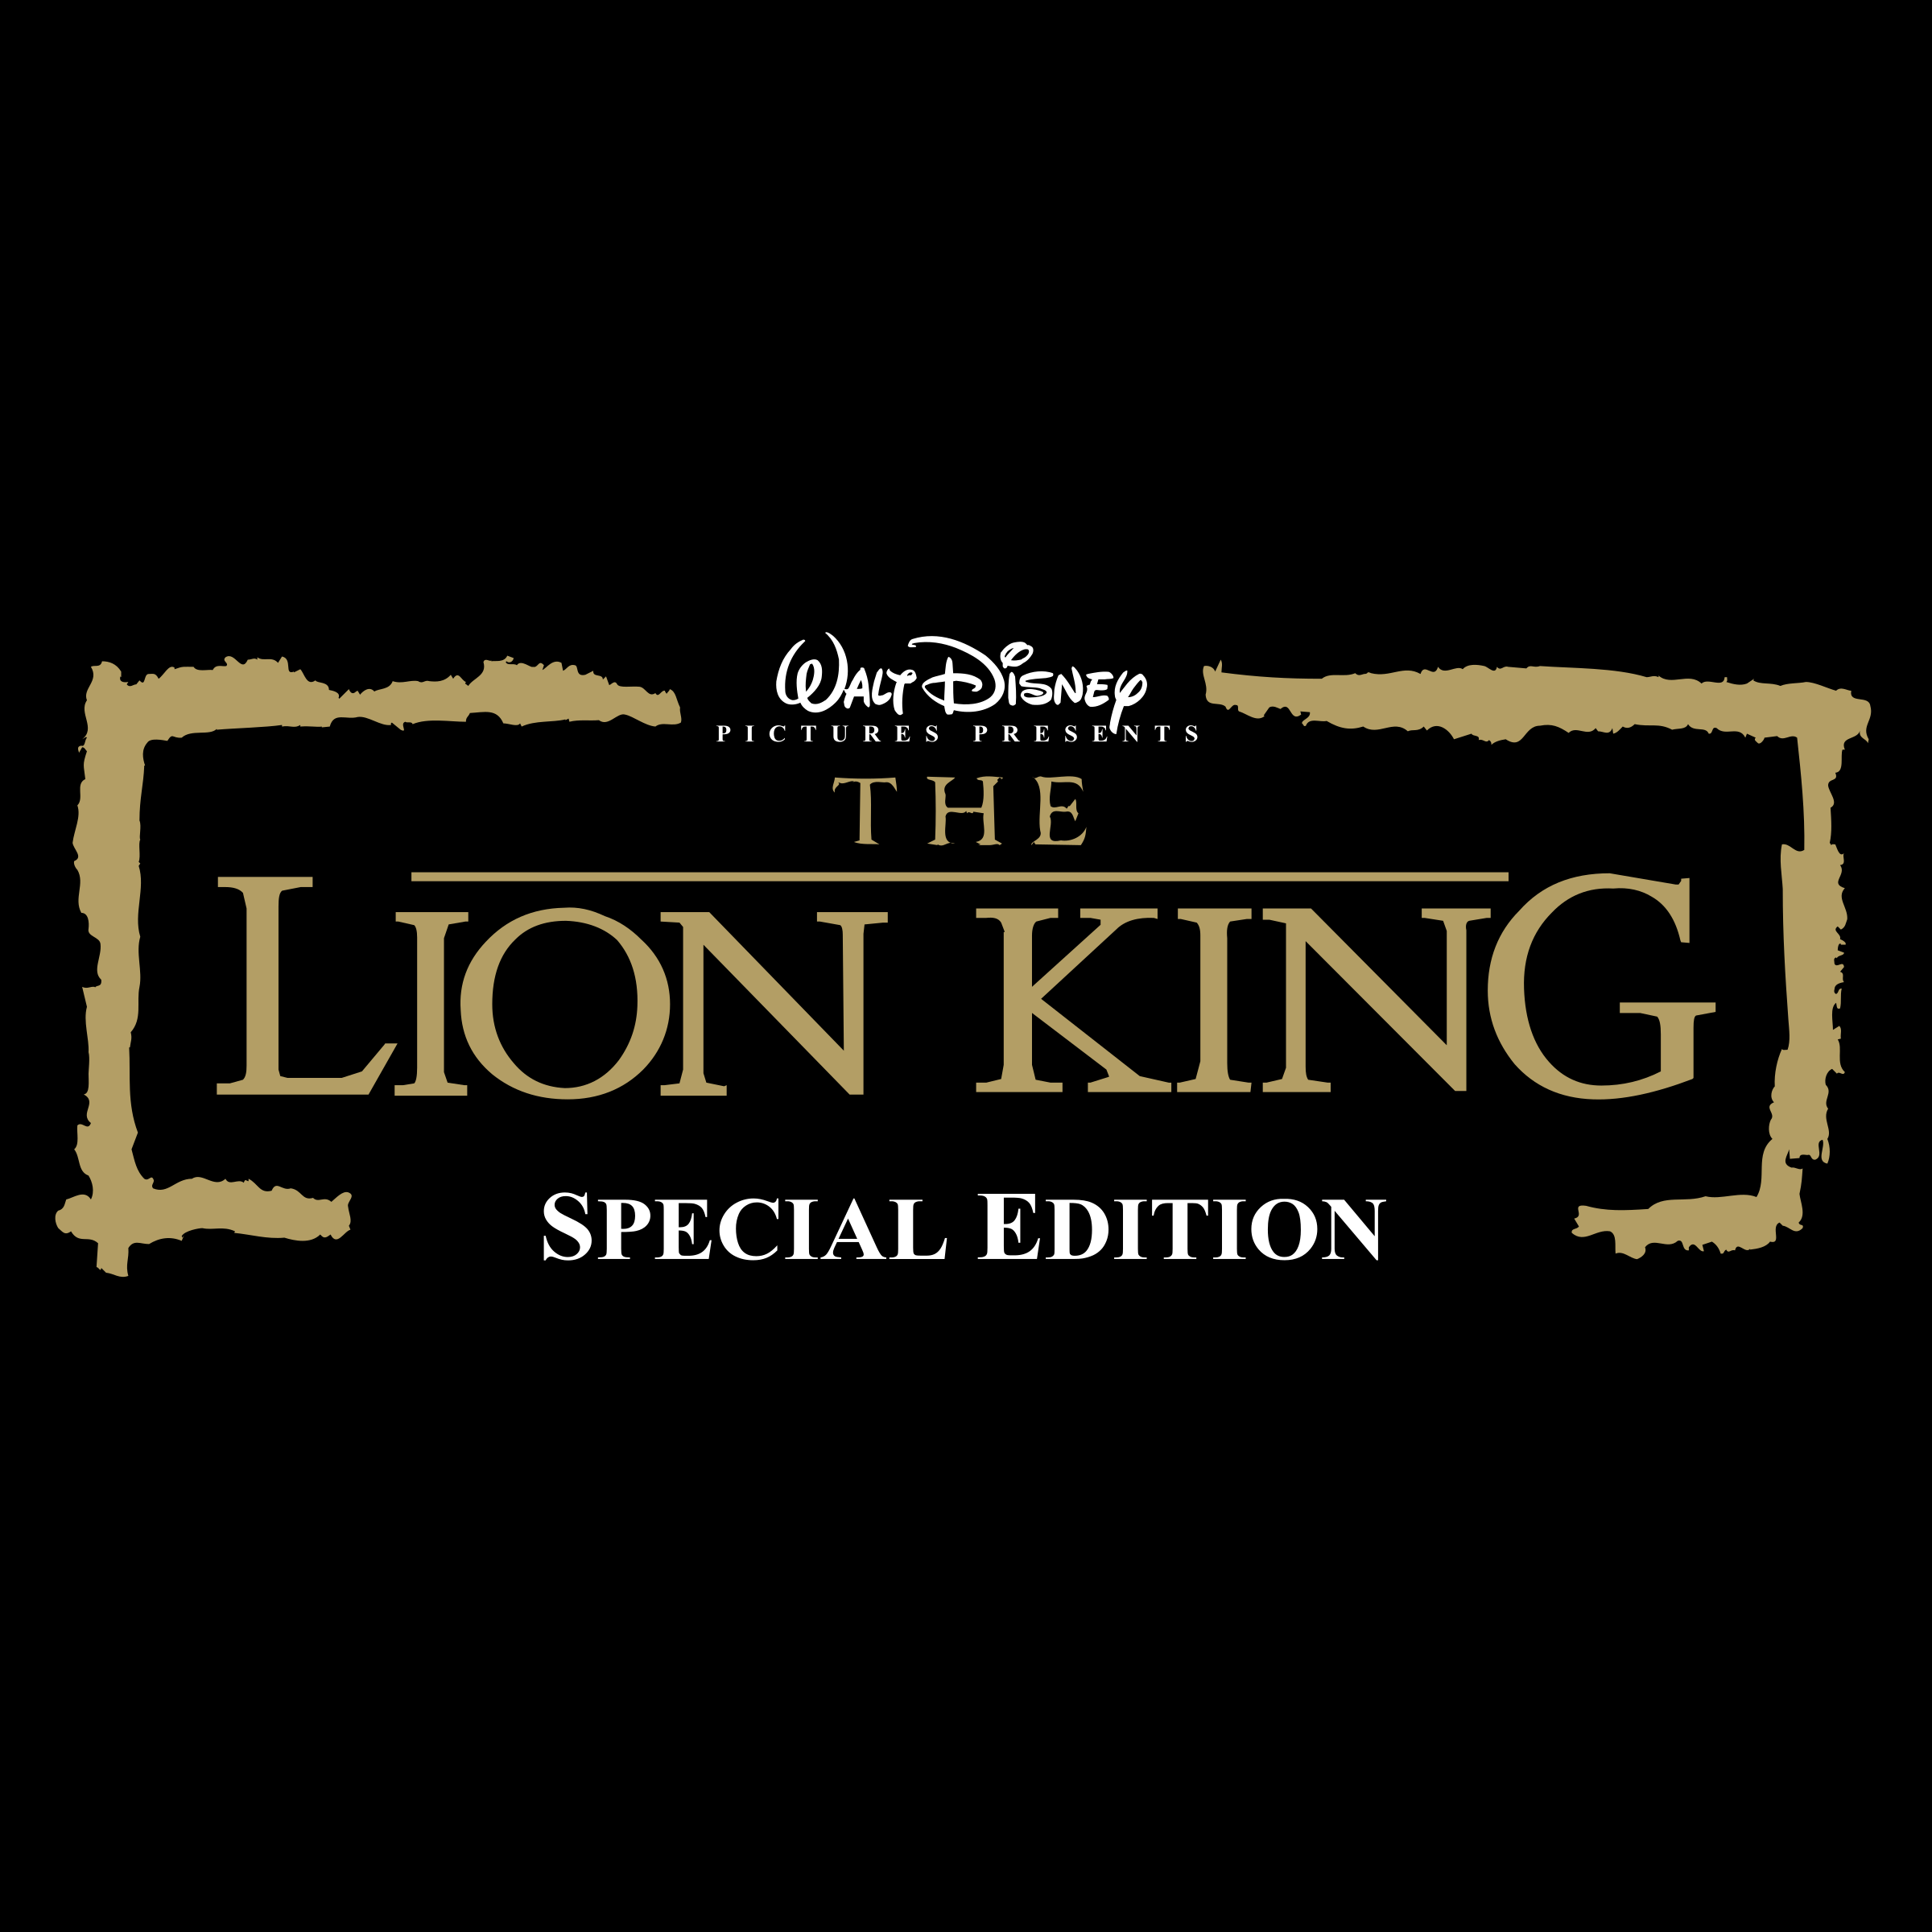 https://cdn.freebiesupply.com/logos/large/2x/the-lion-king-1-logo-png-transparent.png